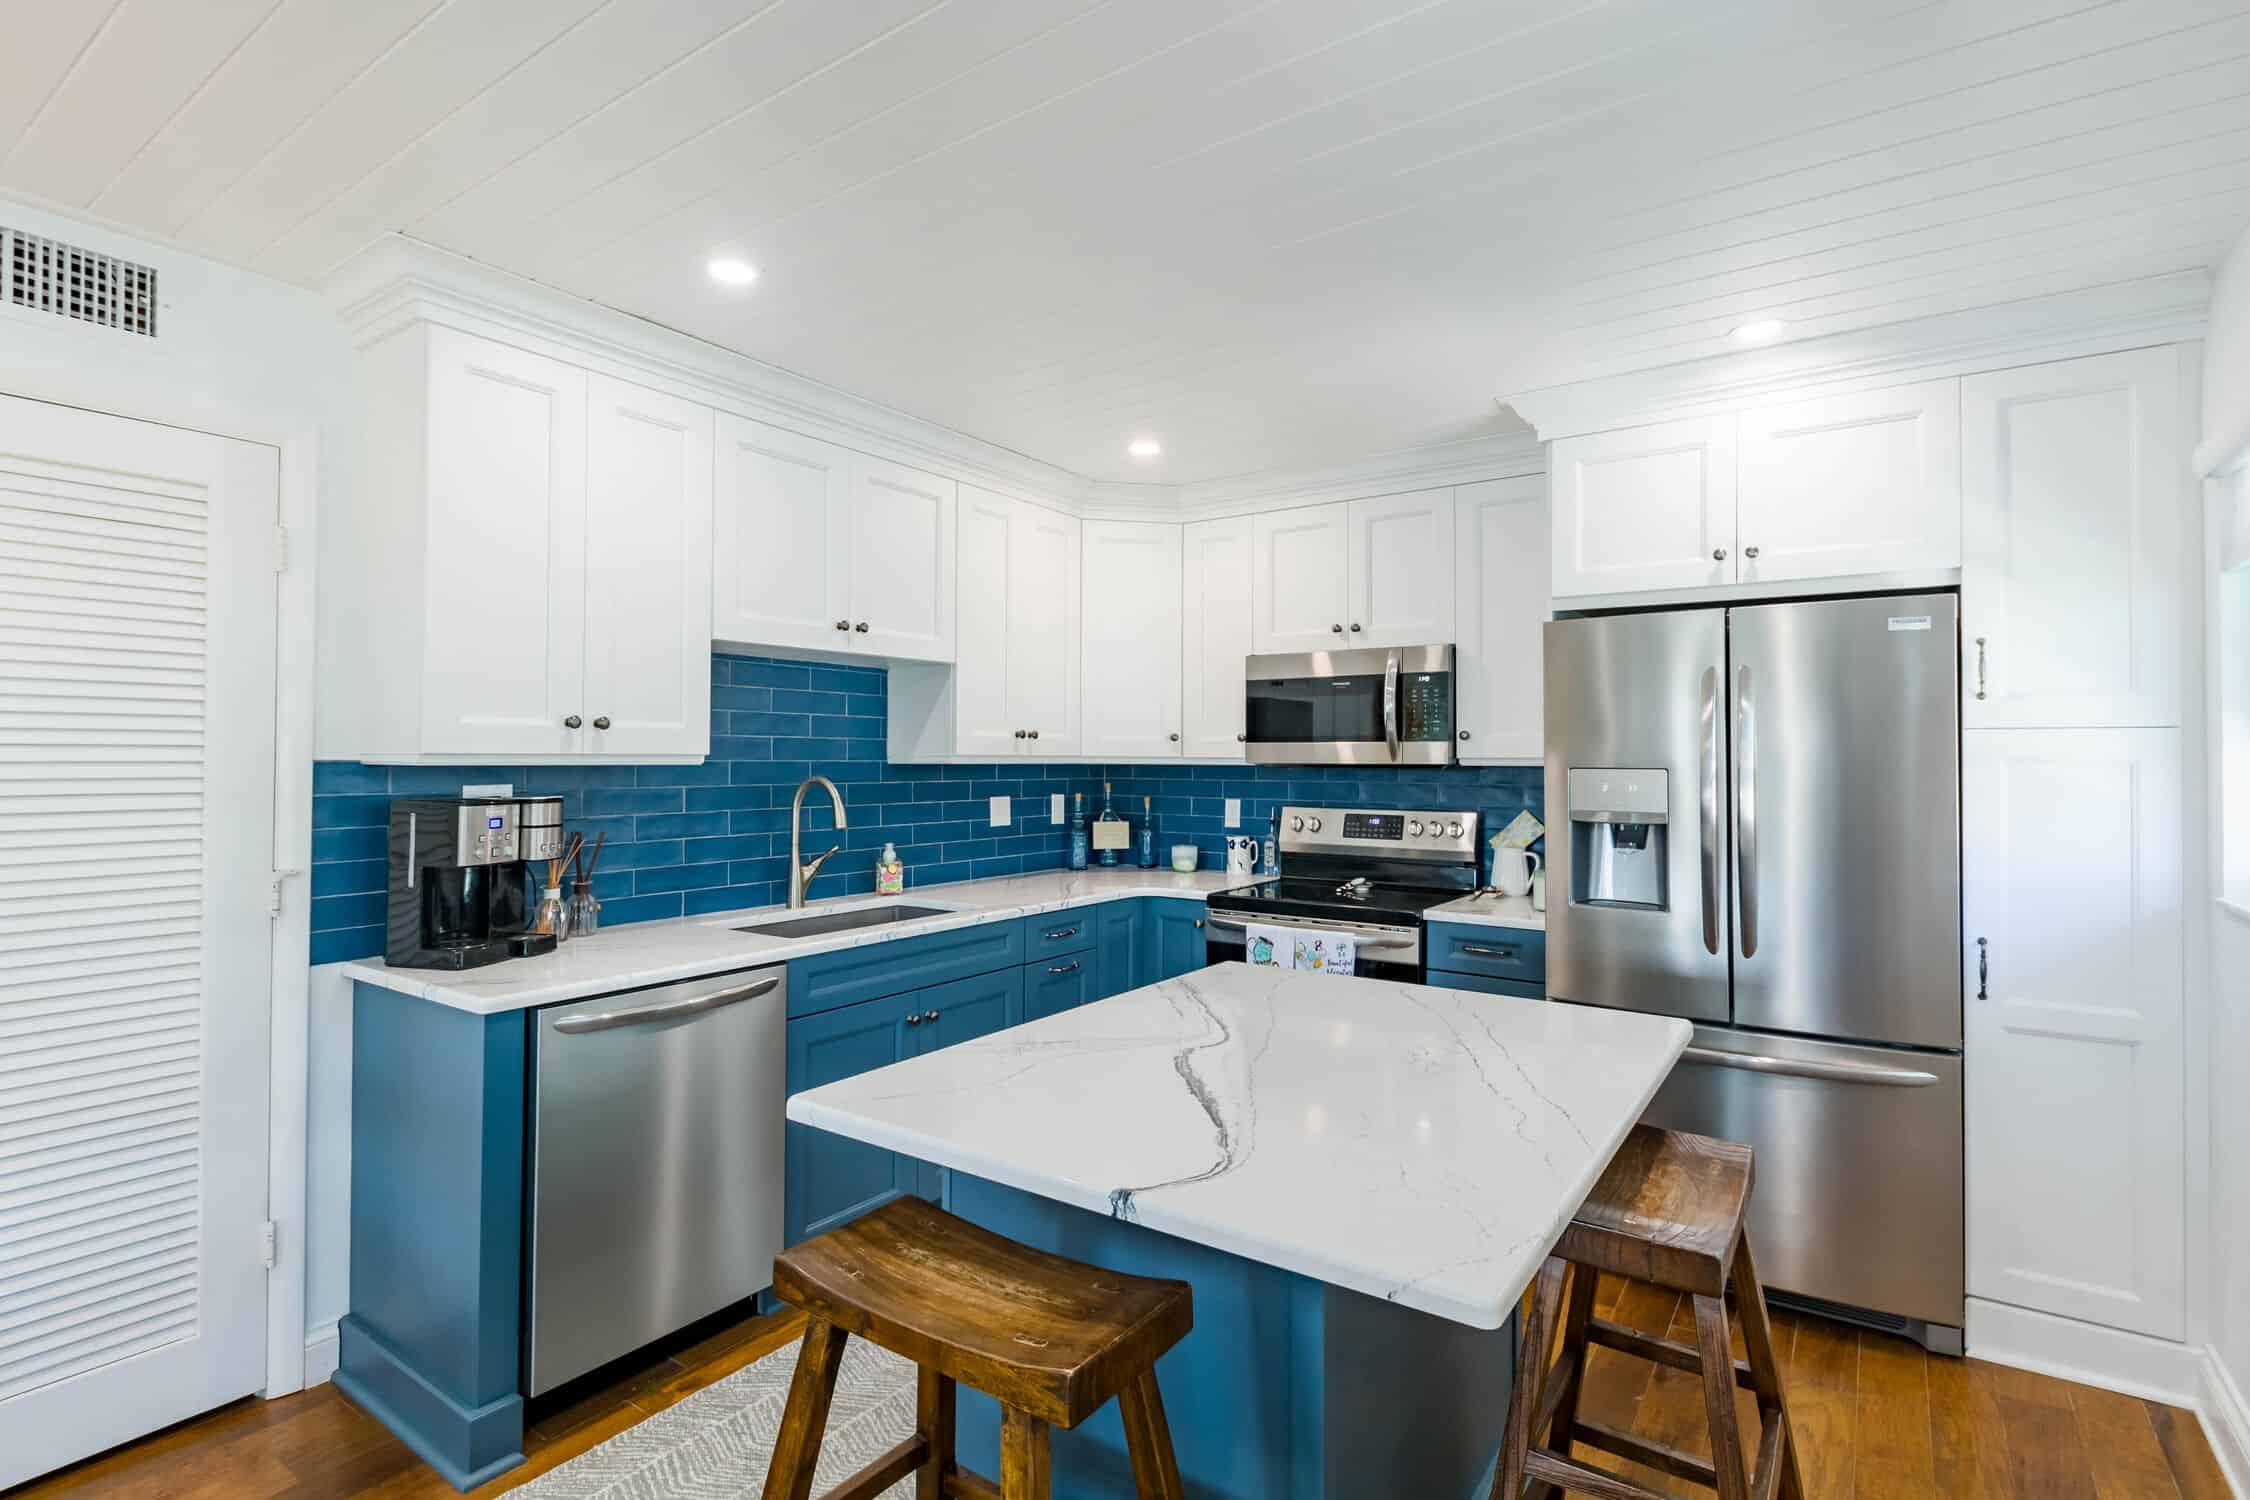 Indian Rocks Beach Kitchen Remodeling from entrance of Indian Shores home